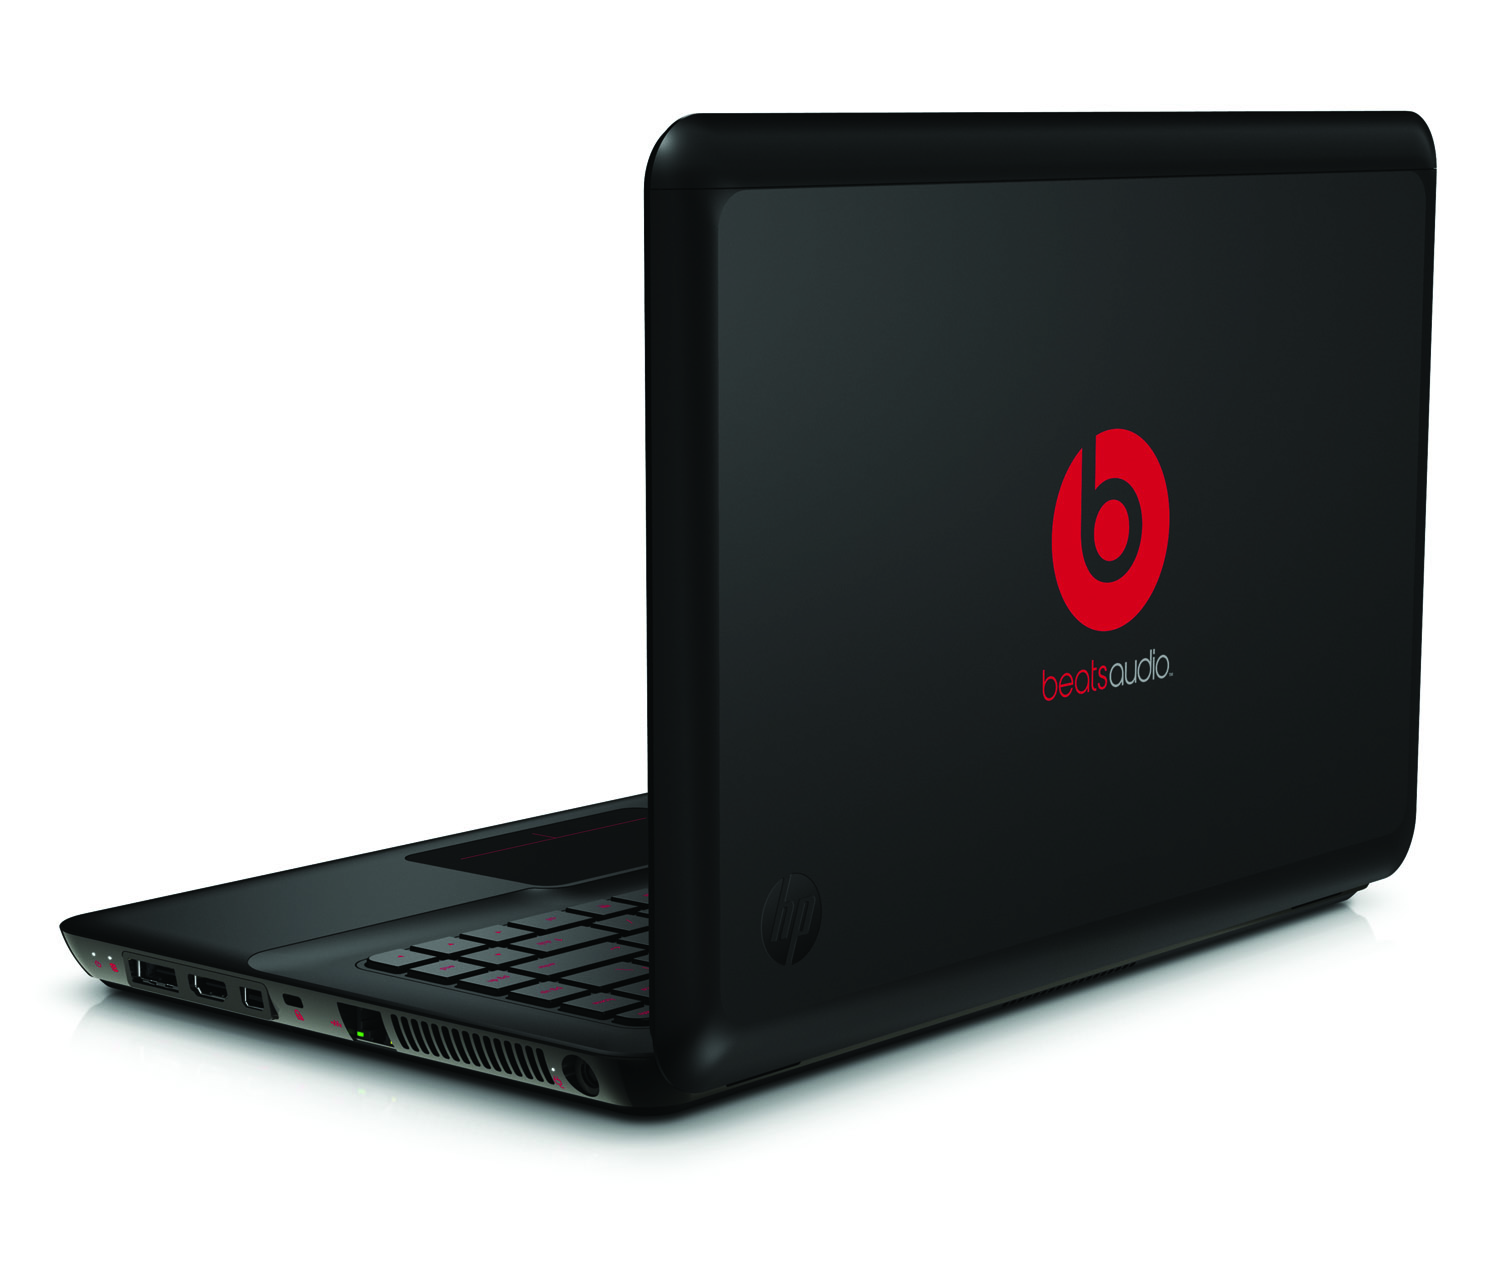 HP ENVY 14 BEATS Edition Announced W BEATS Styling Headphones 1500x1275